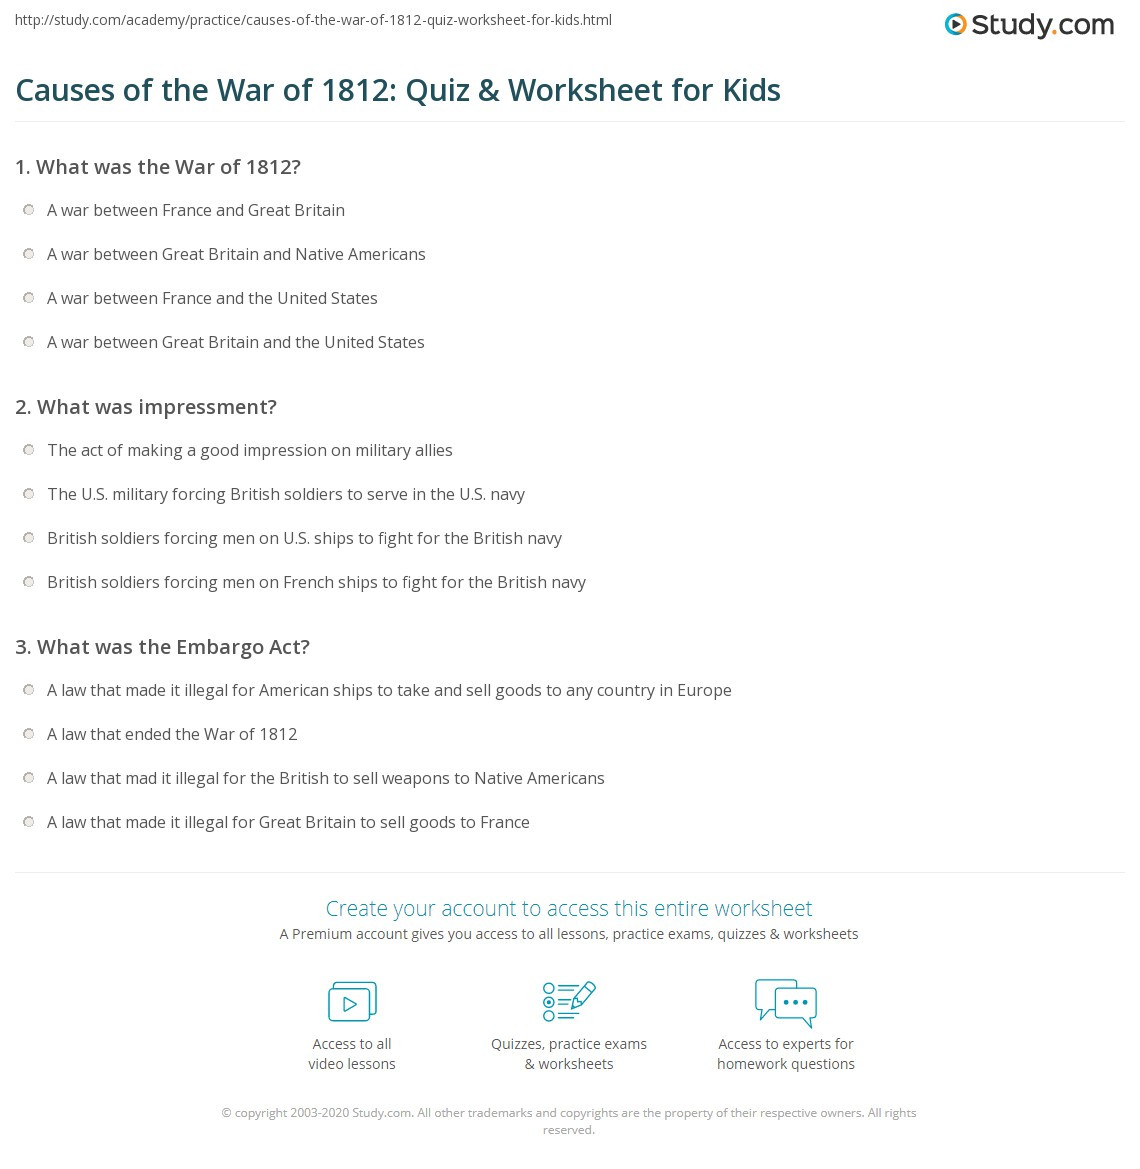 Causes of the War of 1812 Quiz & Worksheet for Kids